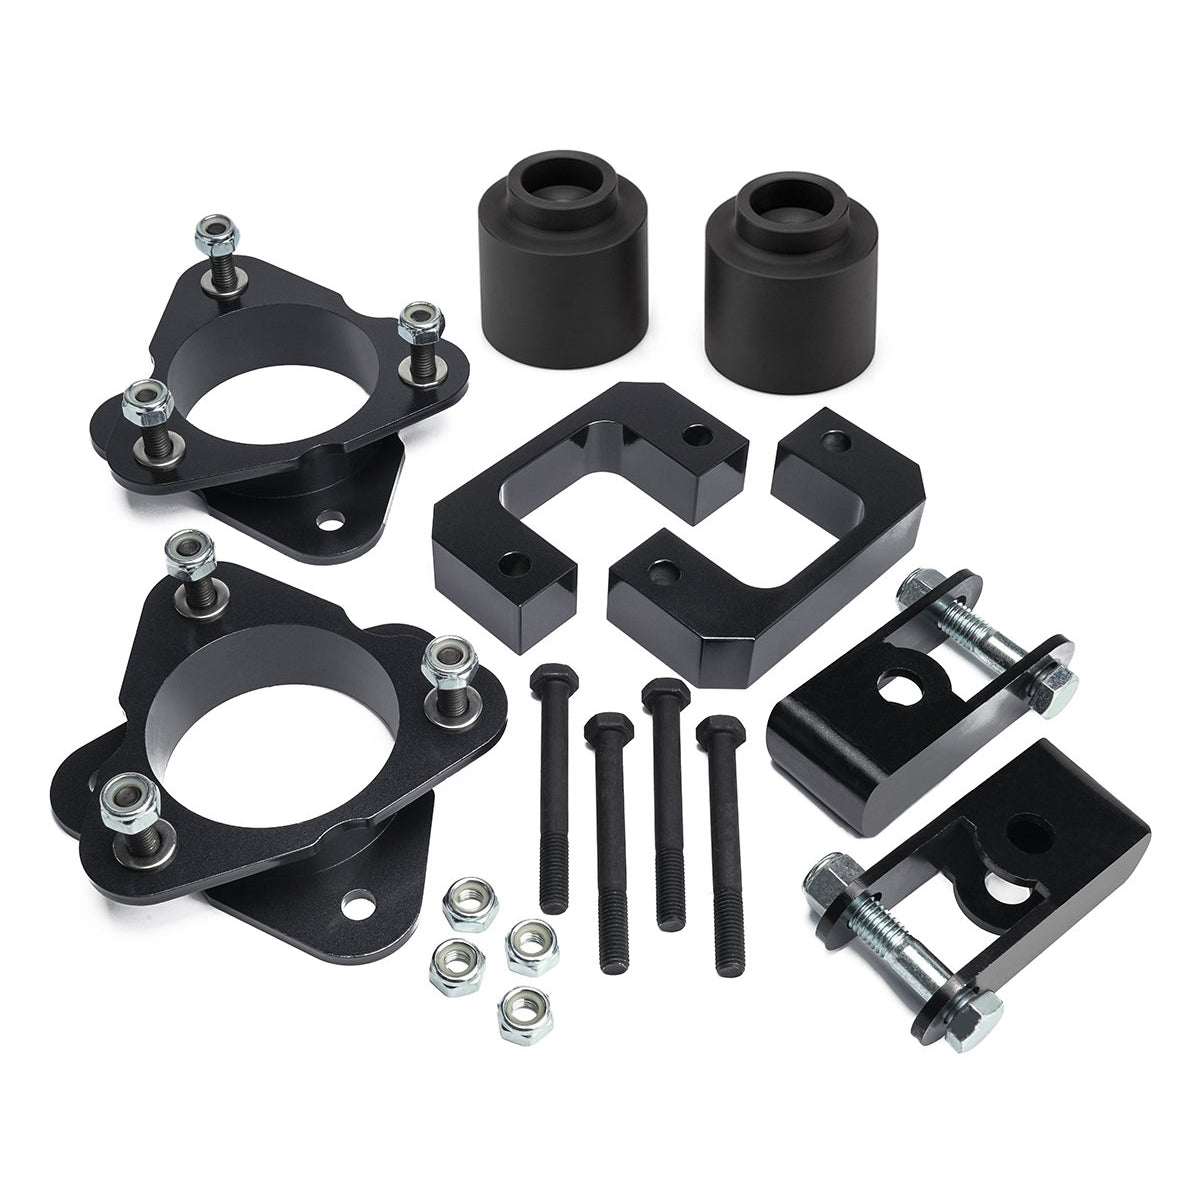 2007-2020 Chevy Tahoe 1500 Front Lift Kit with Shock Extenders